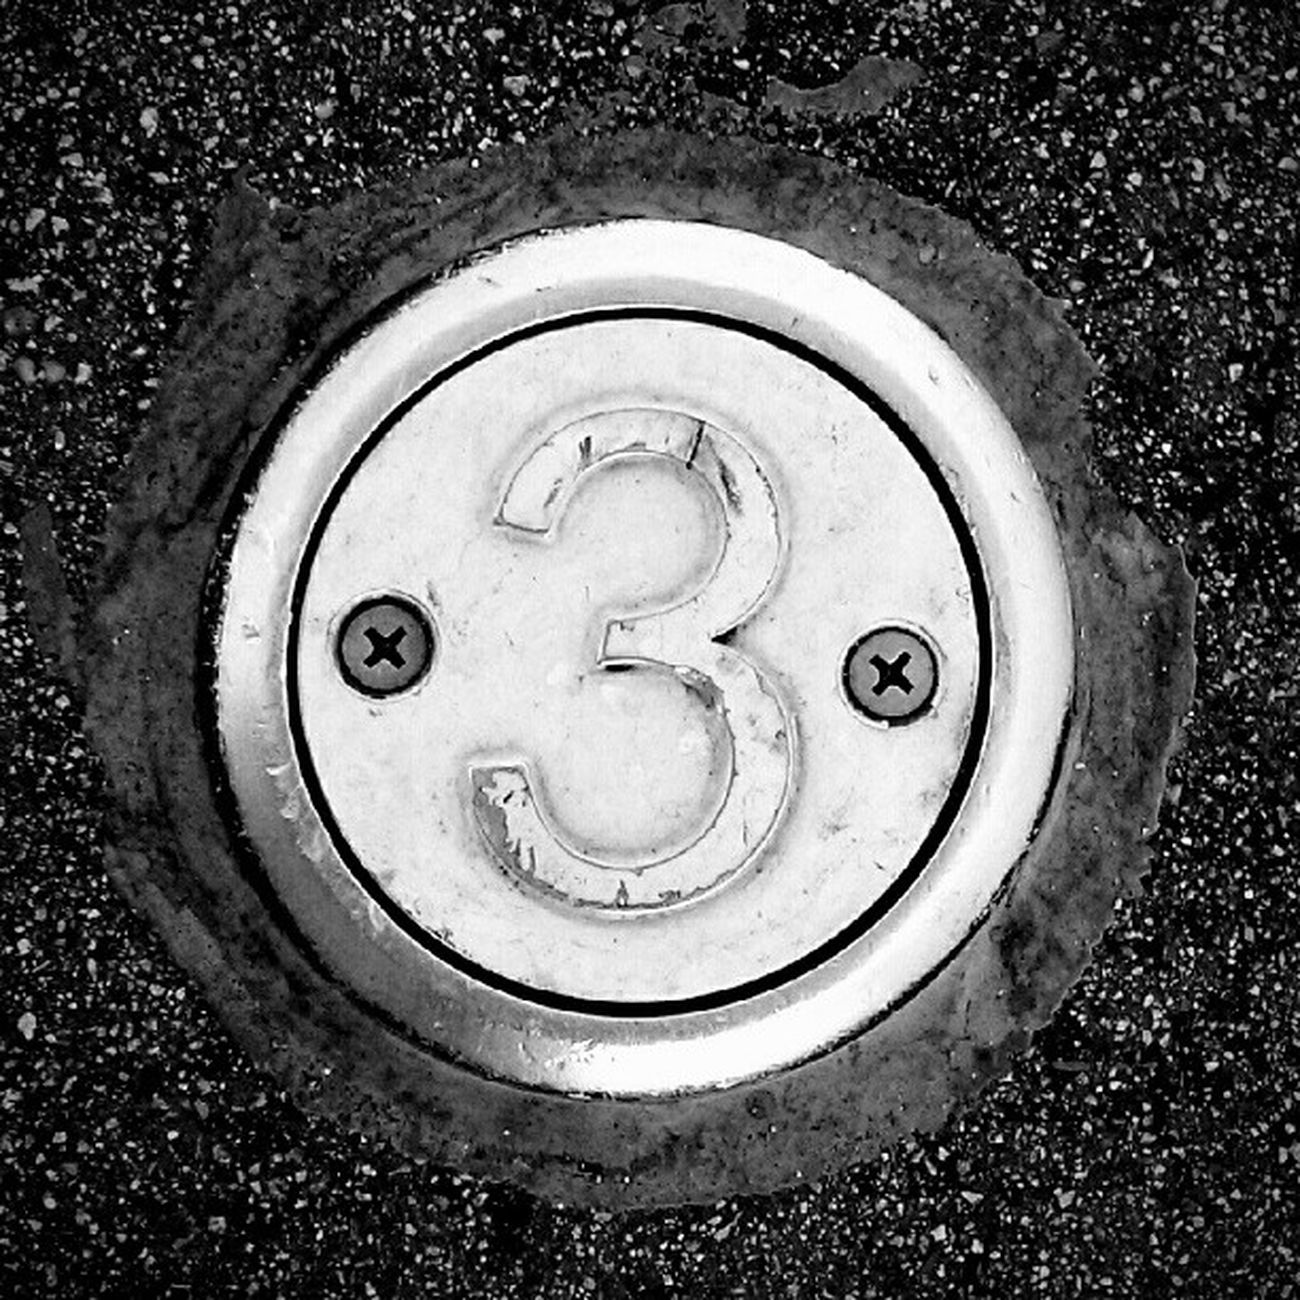 3 the hard way LiveanddirectfromLosAngeles Photooftheday Circle Jj  Losangeles From My Point Of View Blackandwhite Bnw Fortheloveofblackandwhite Monochrome Black&white Three